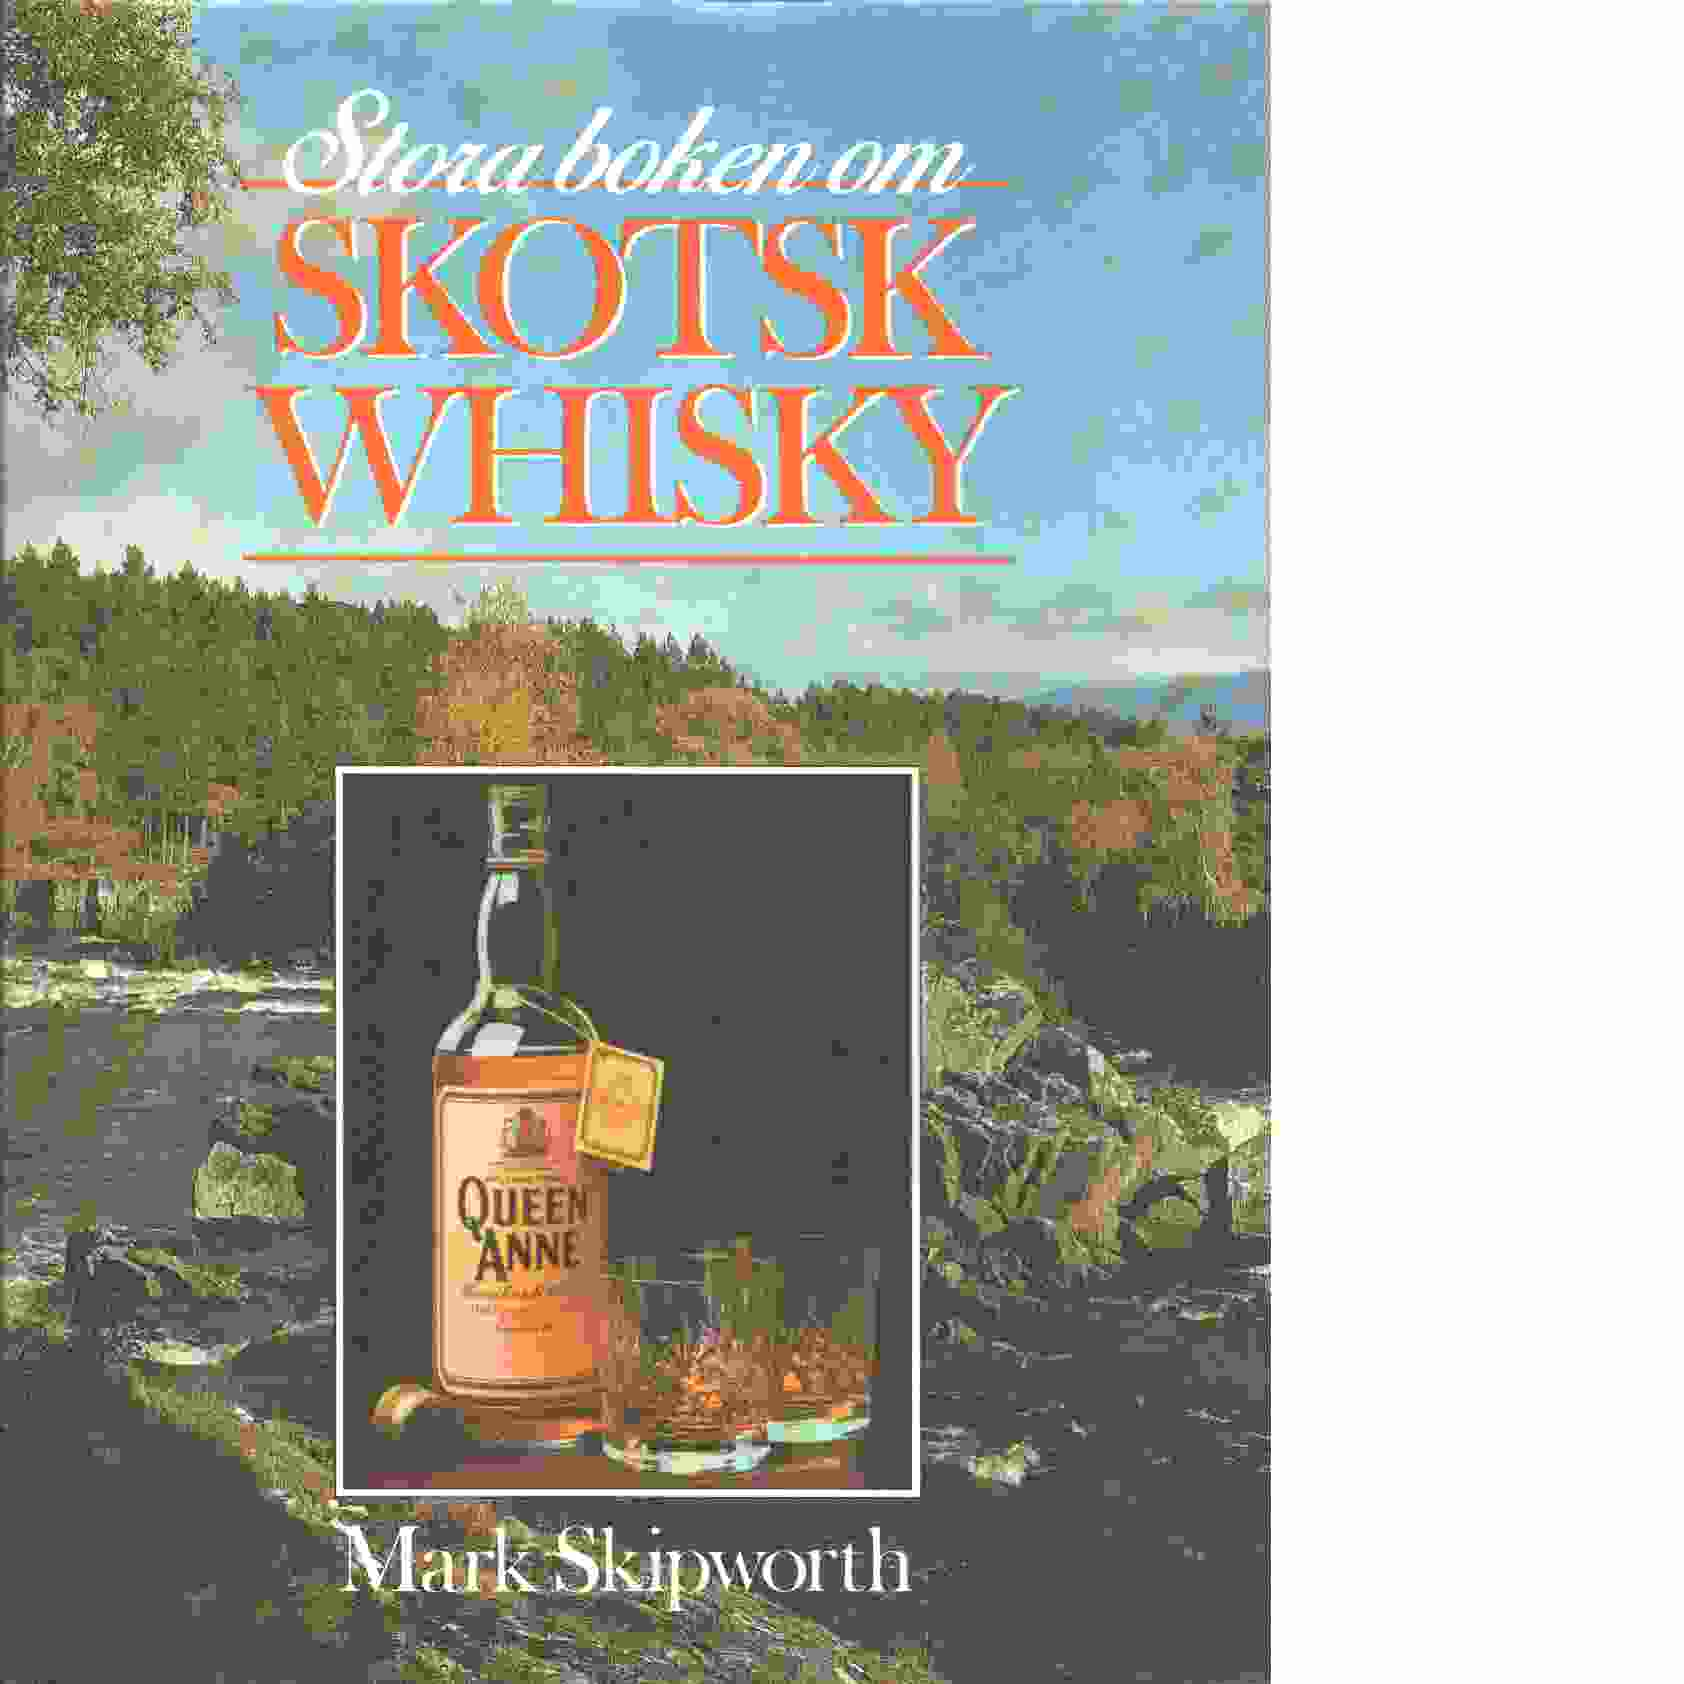 Stora boken om skotsk whisky - Skipworth, Mark